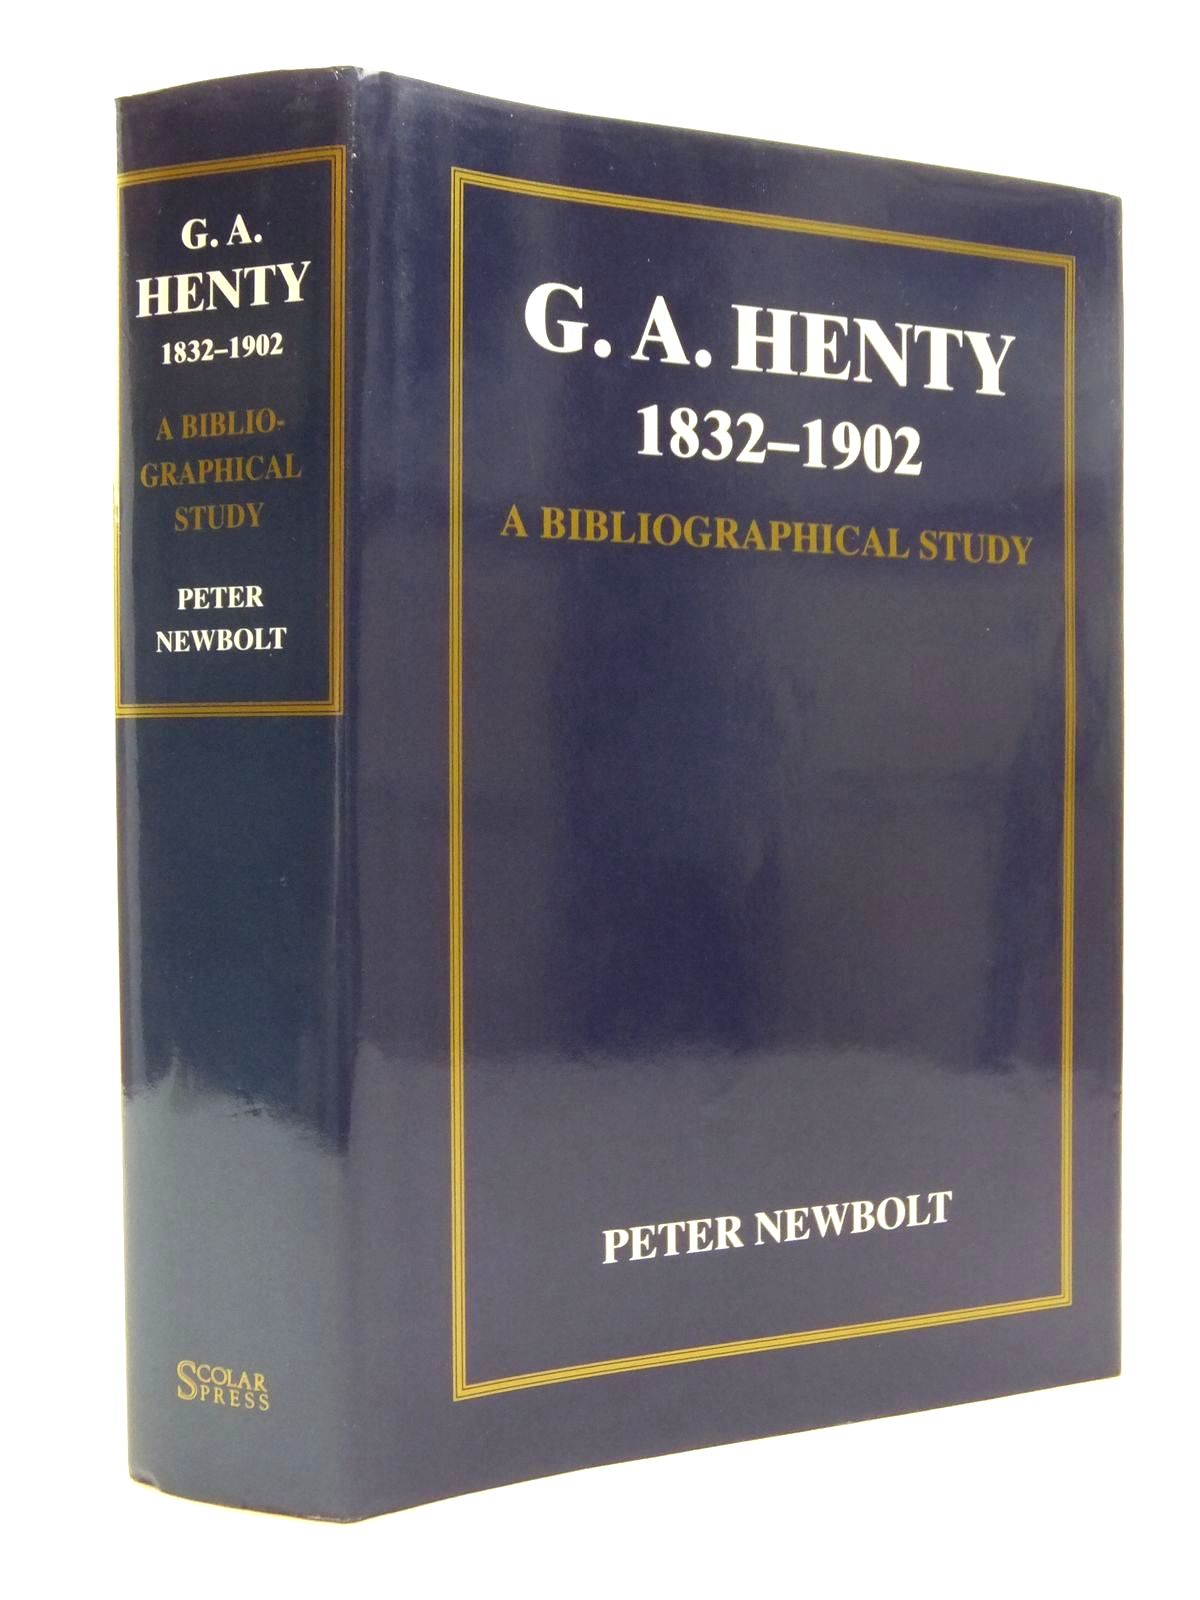 Photo of G.A. HENTY 1832-1902 written by Henty, G.A. Newbolt, Peter published by Scolar Press (STOCK CODE: 2123850)  for sale by Stella & Rose's Books